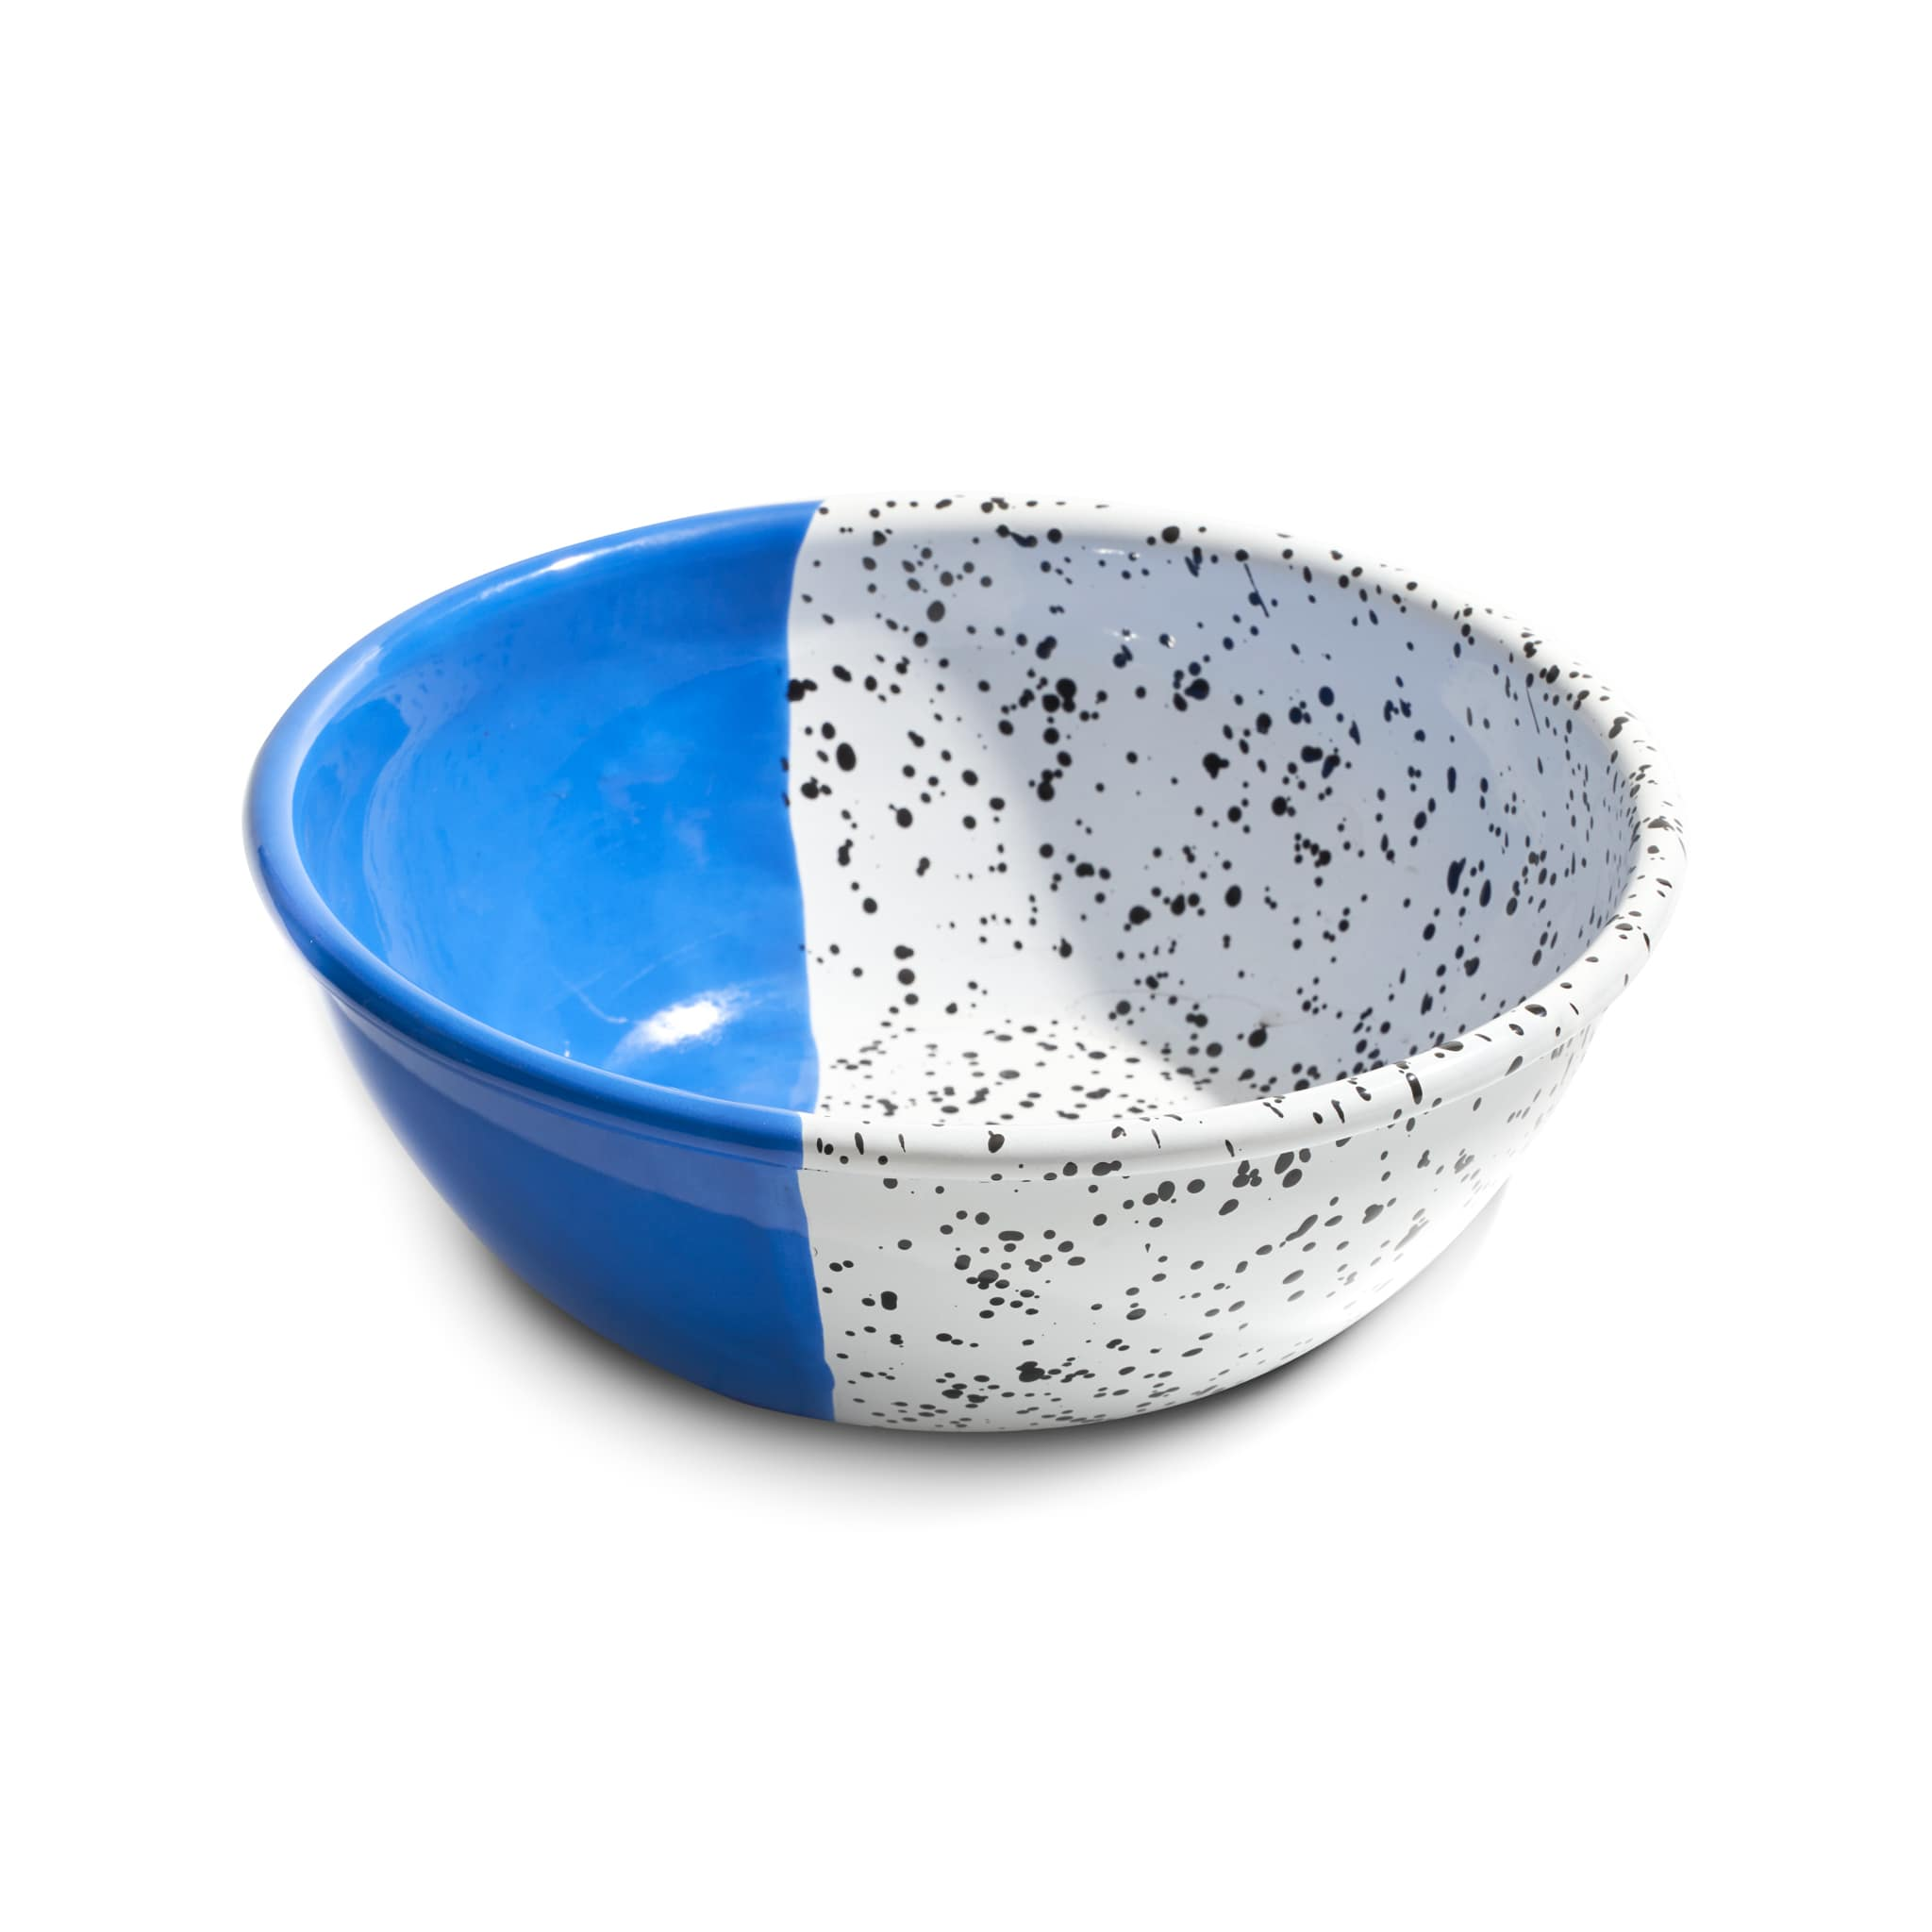 Colour Pop Enamel Salad Bowl Cobalt Blue 19cm